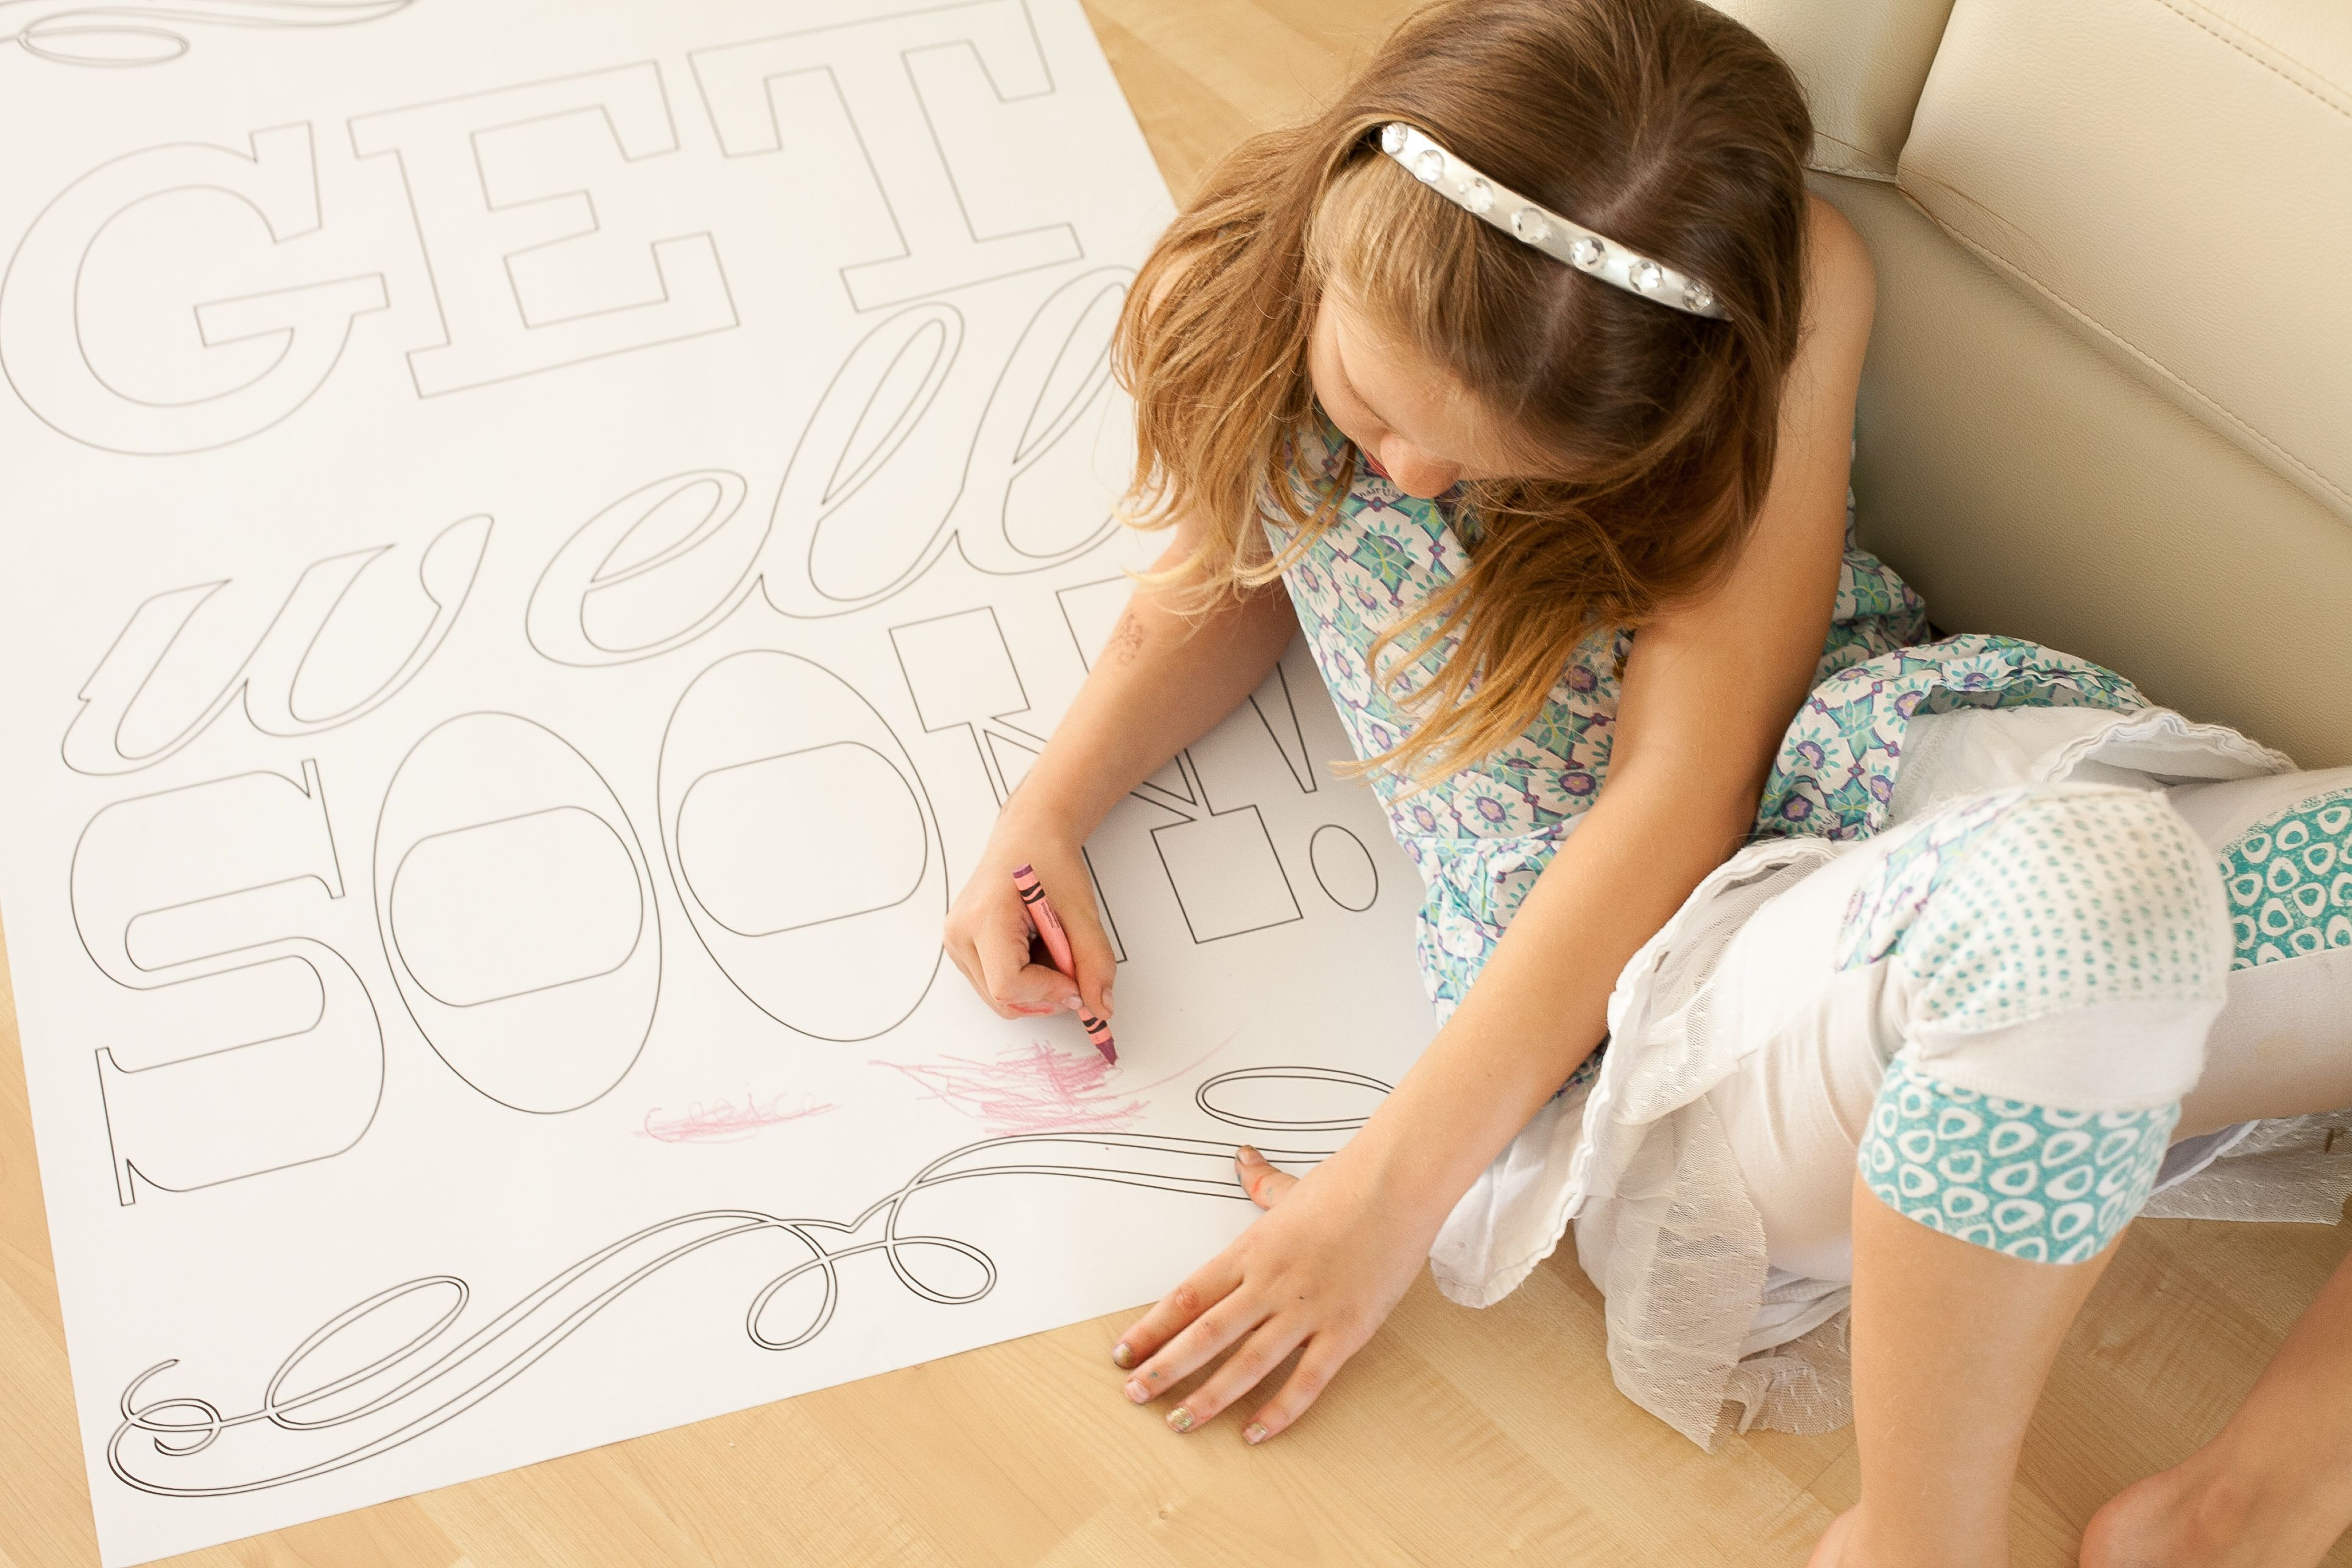 A girl coloring a giant get well soon card.